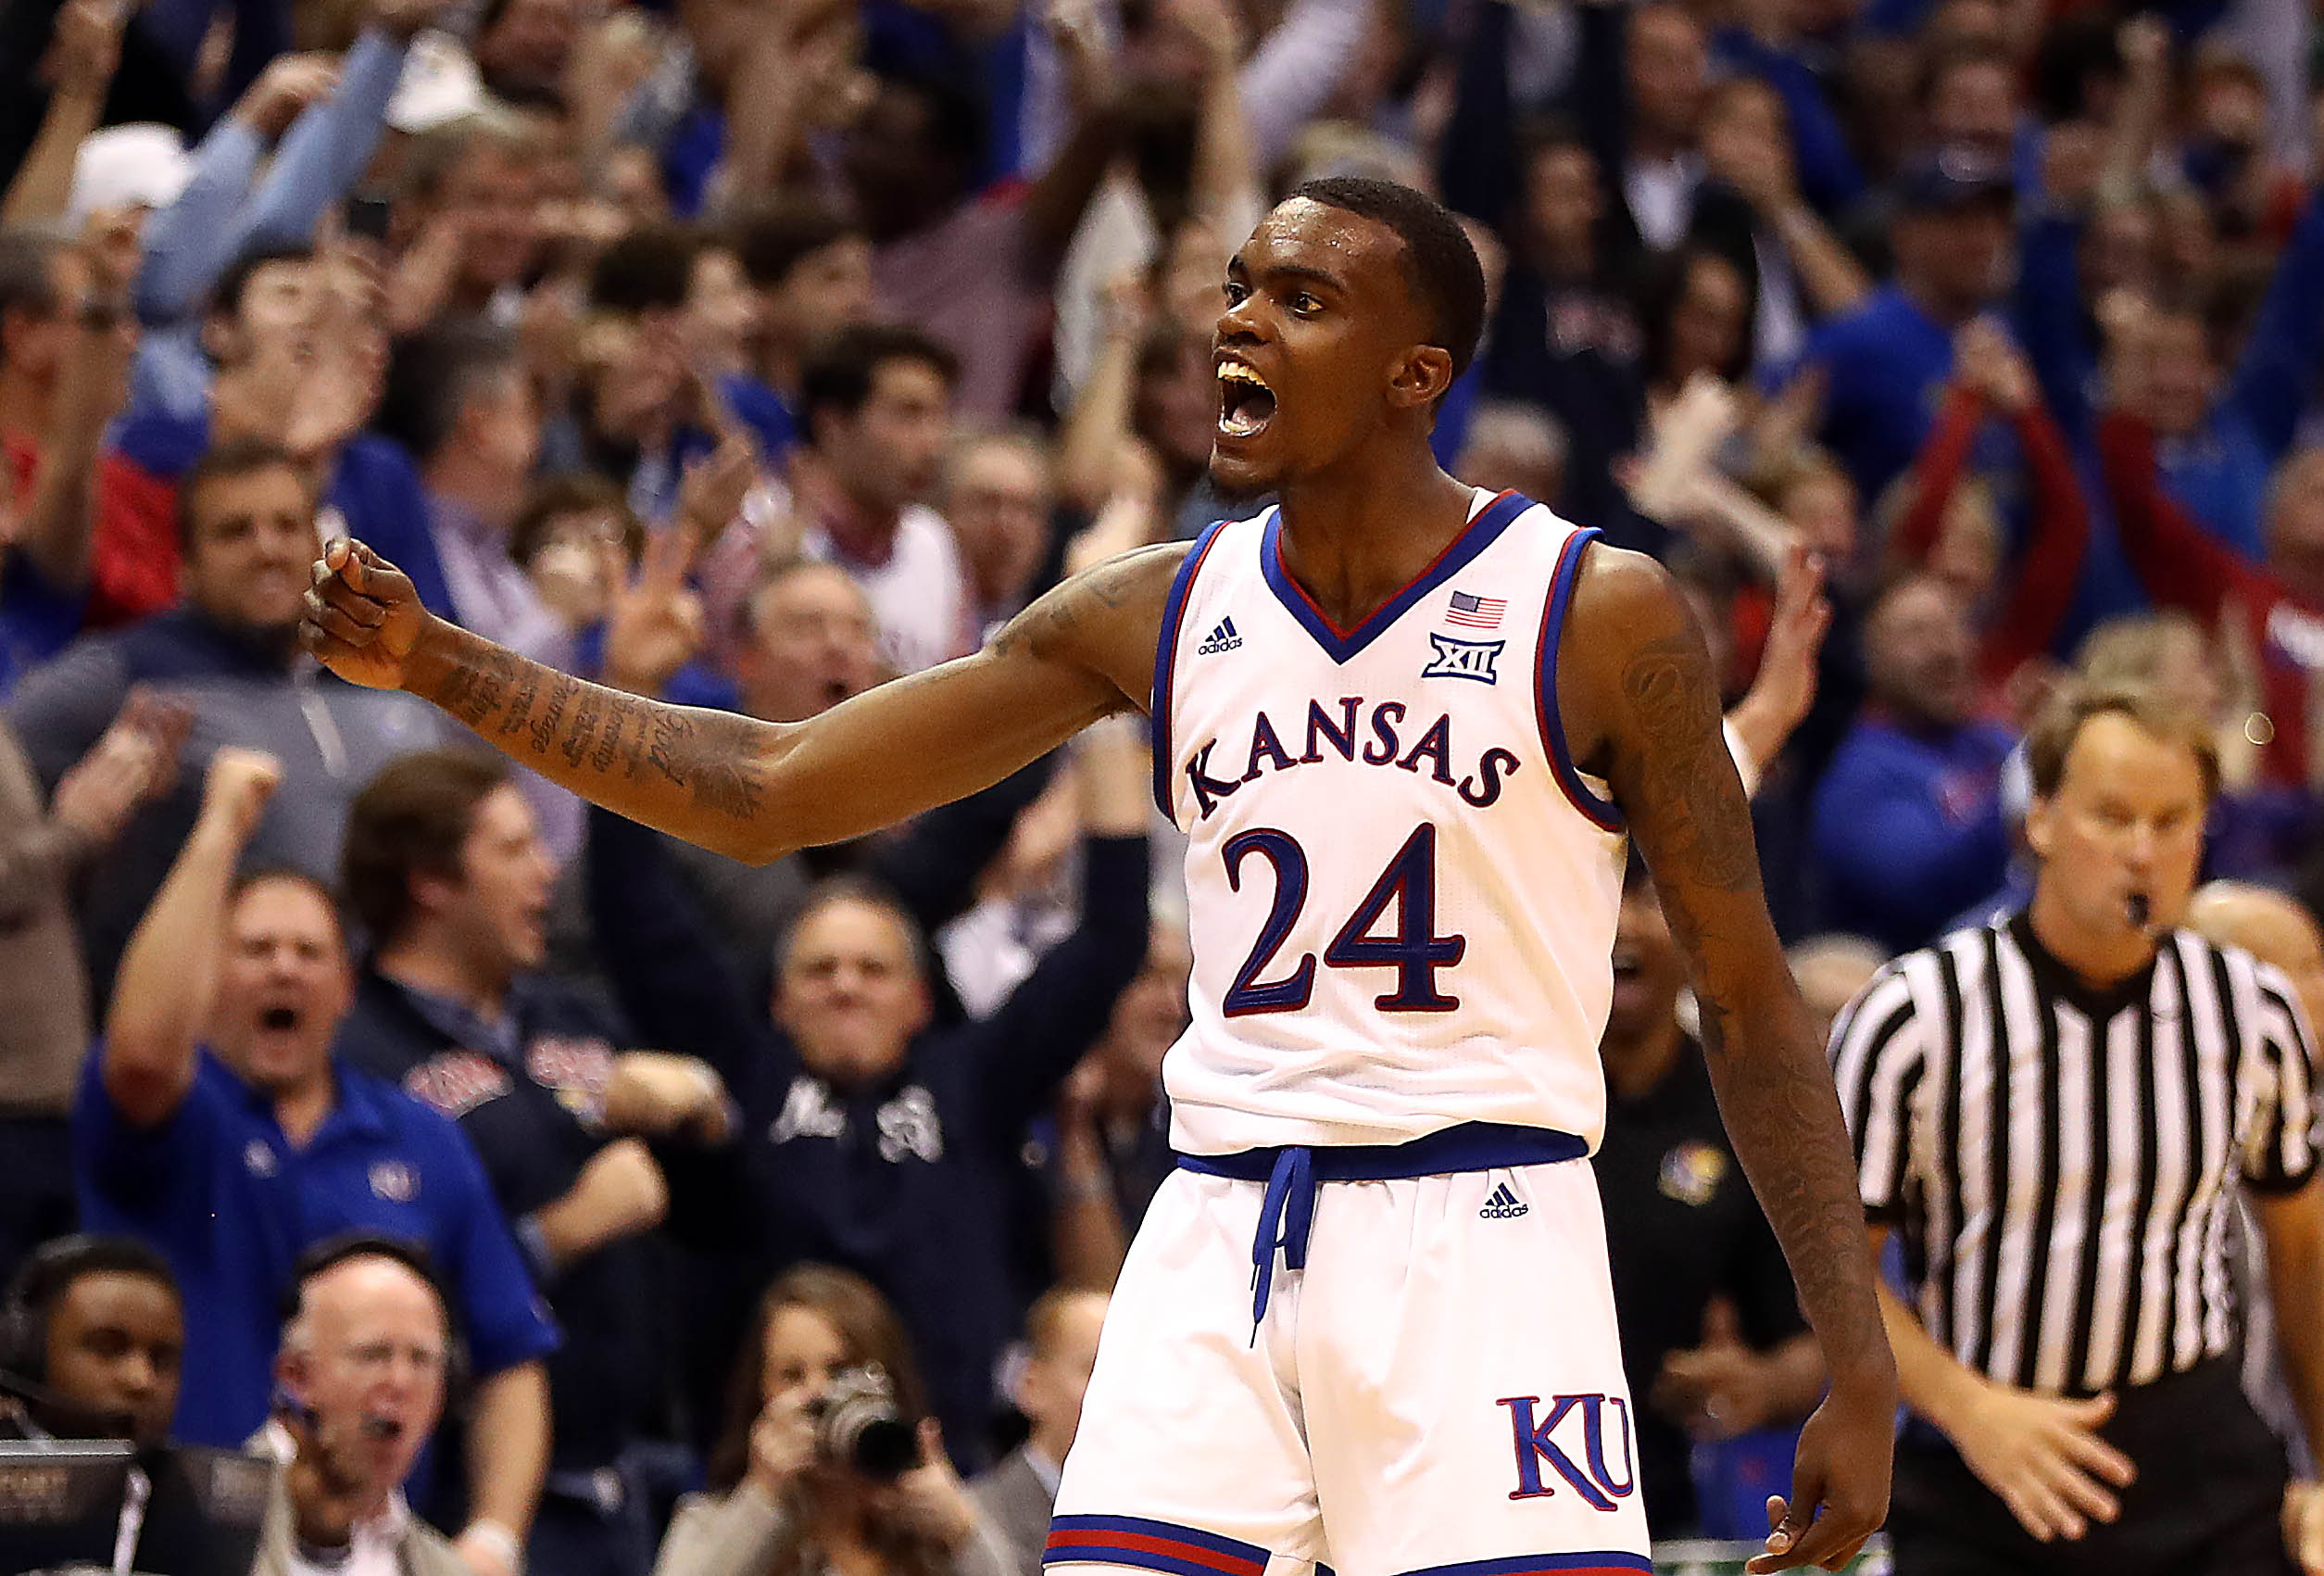 Lagerald Vick's bizarre Kansas basketball career ends before Big 12 tournament